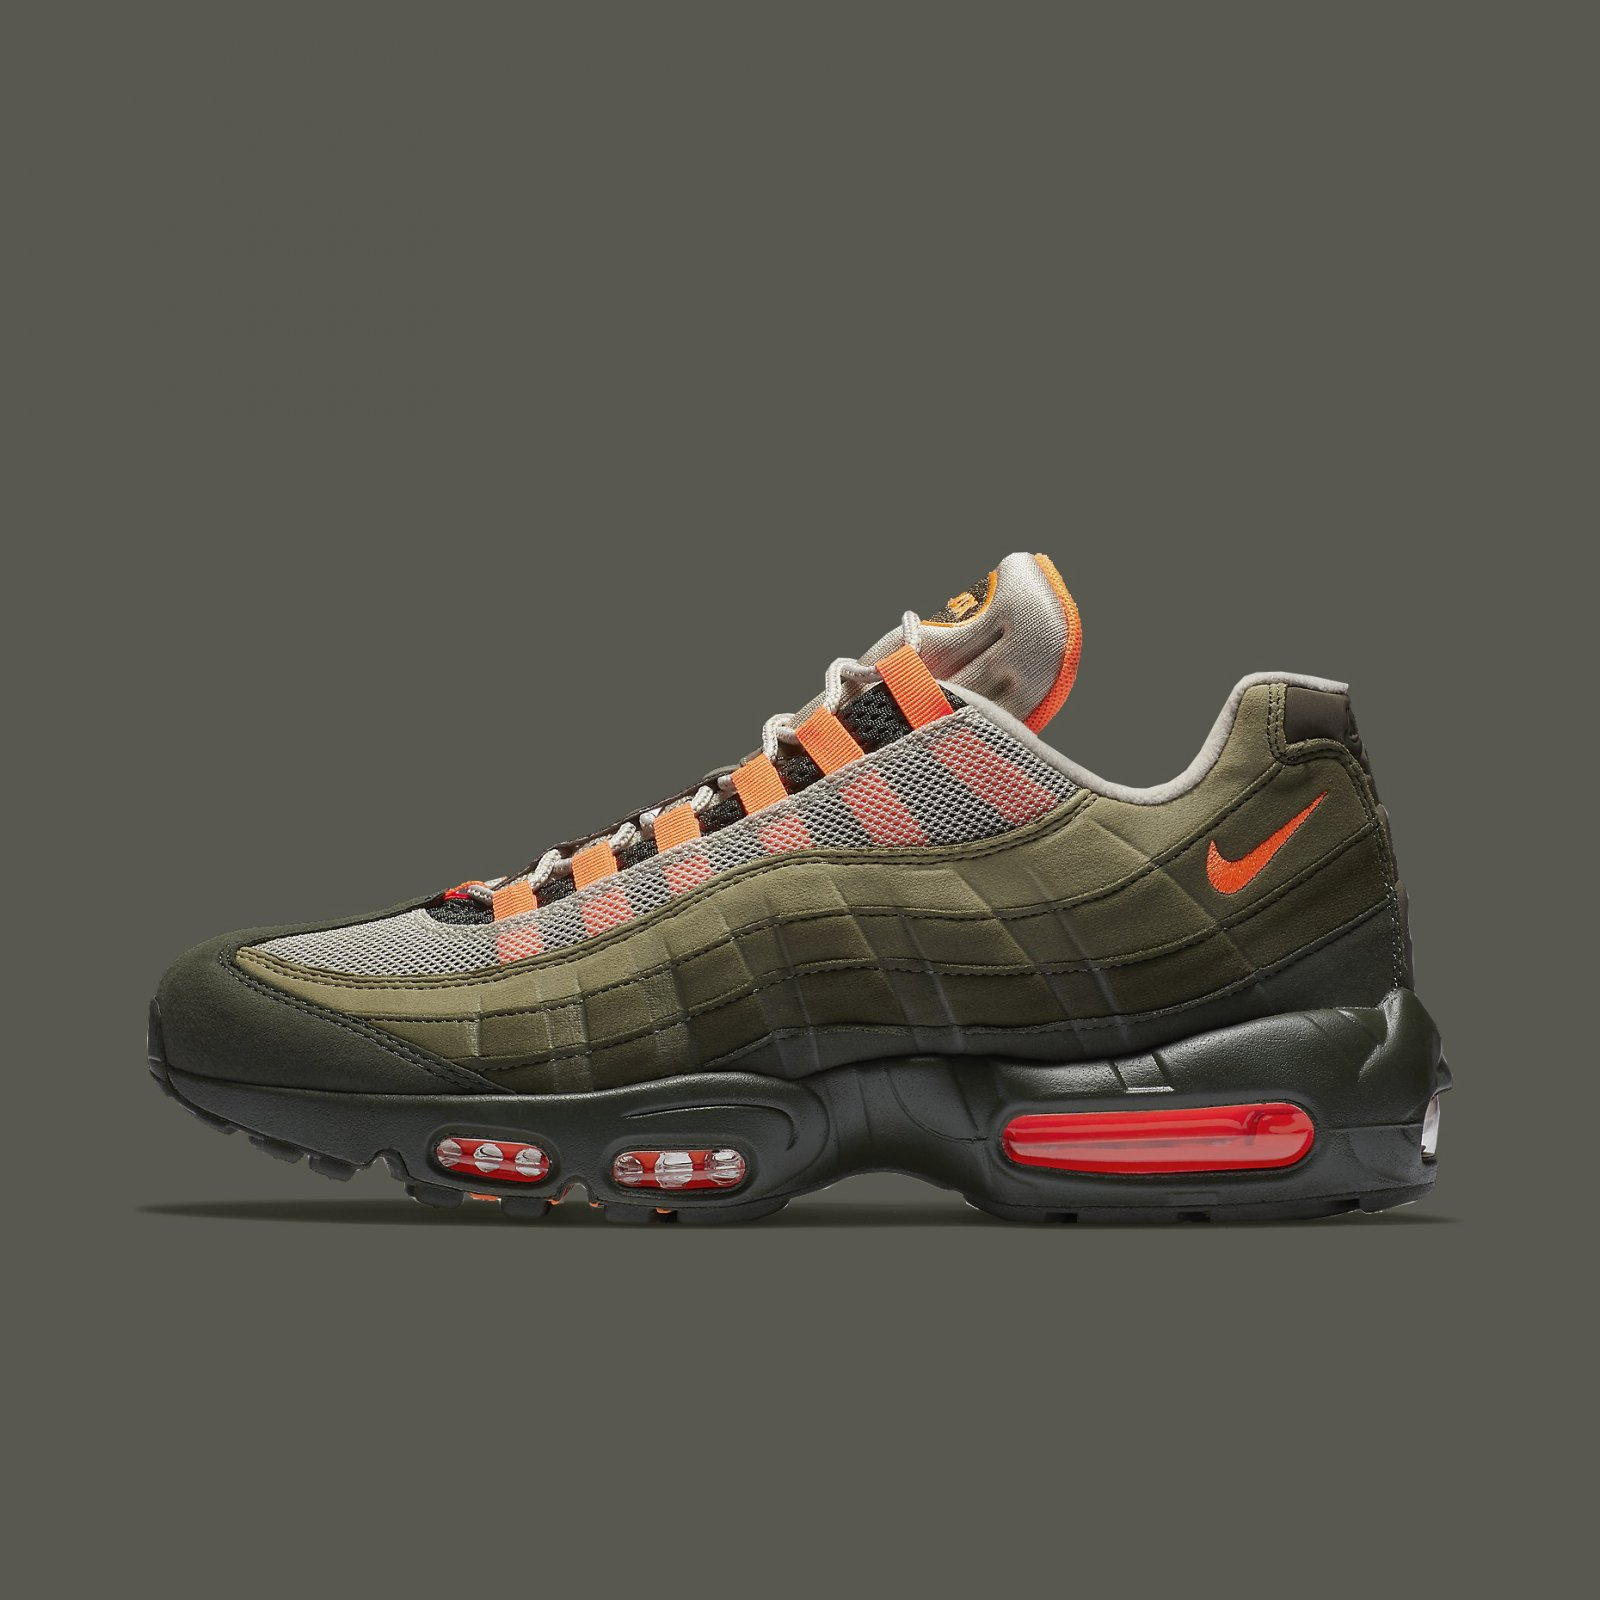 new concept ba5b5 7cd0c Details about Nike Air Max 95 OG String Total Orange Neutral Olive 2018  Men's AT2865-200